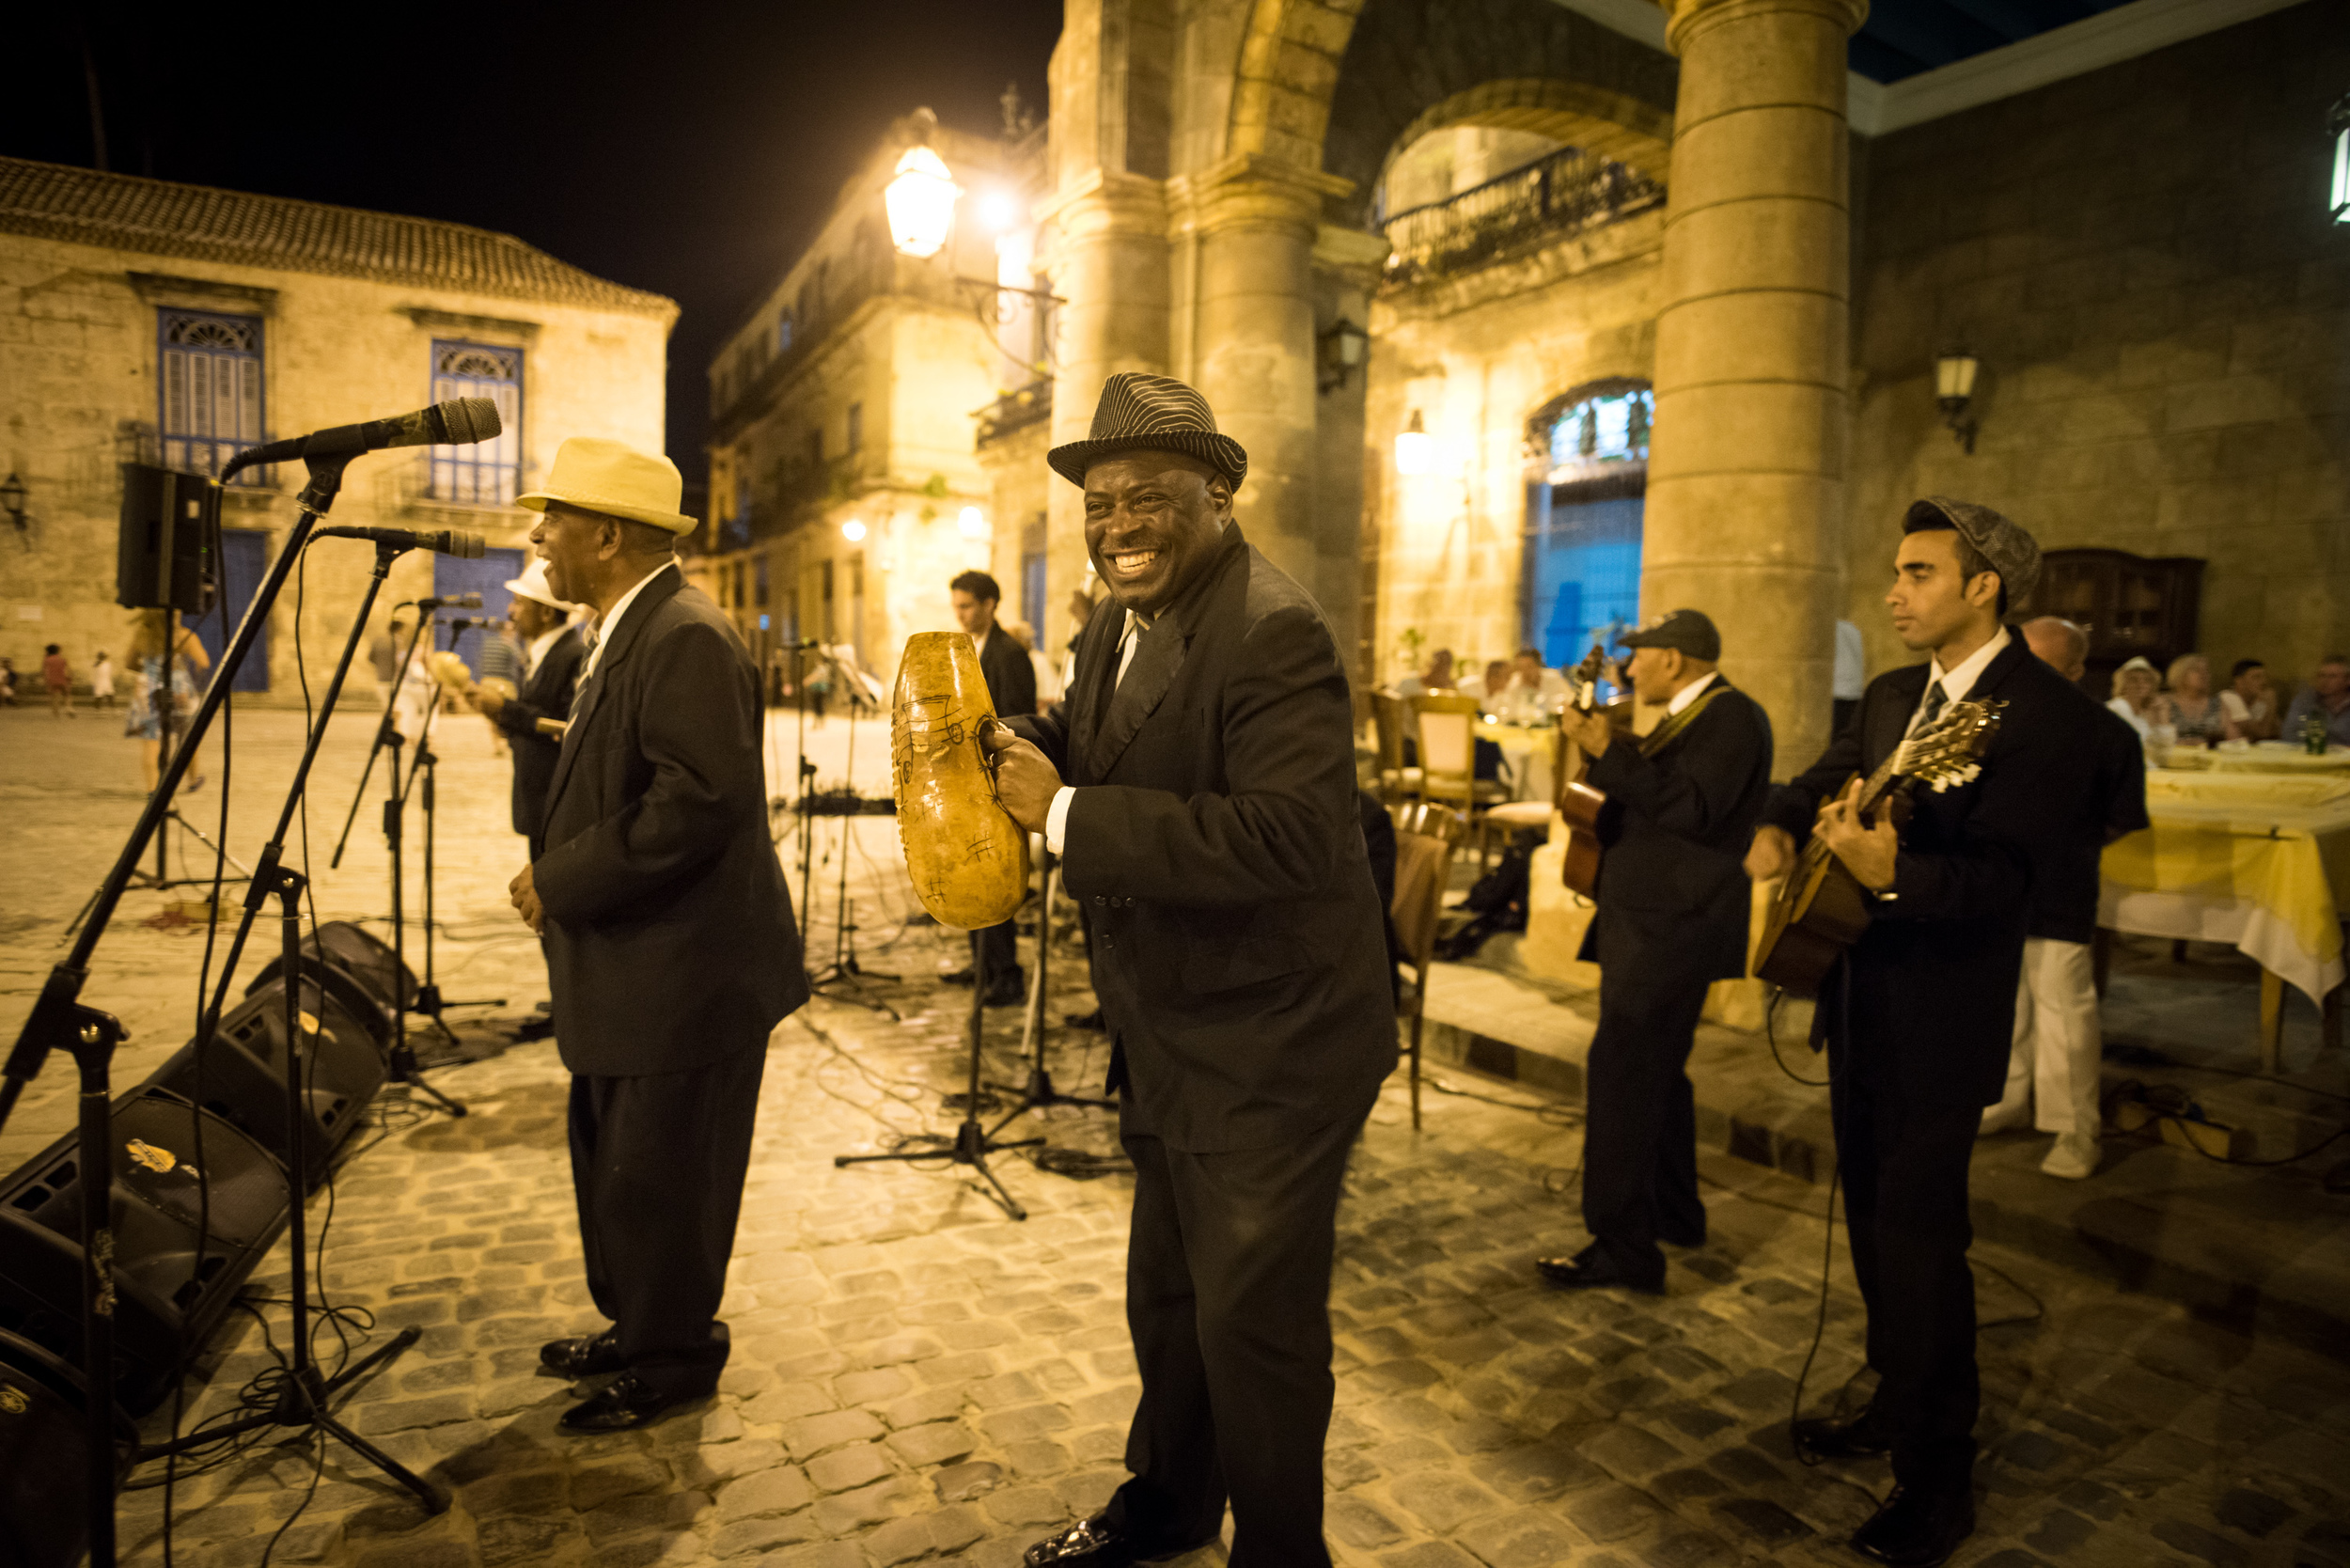 Local Cuban band Septeto Habanero performed while the Minnesota Orchestra had dinner. Live music accompanied every meal during the trip.